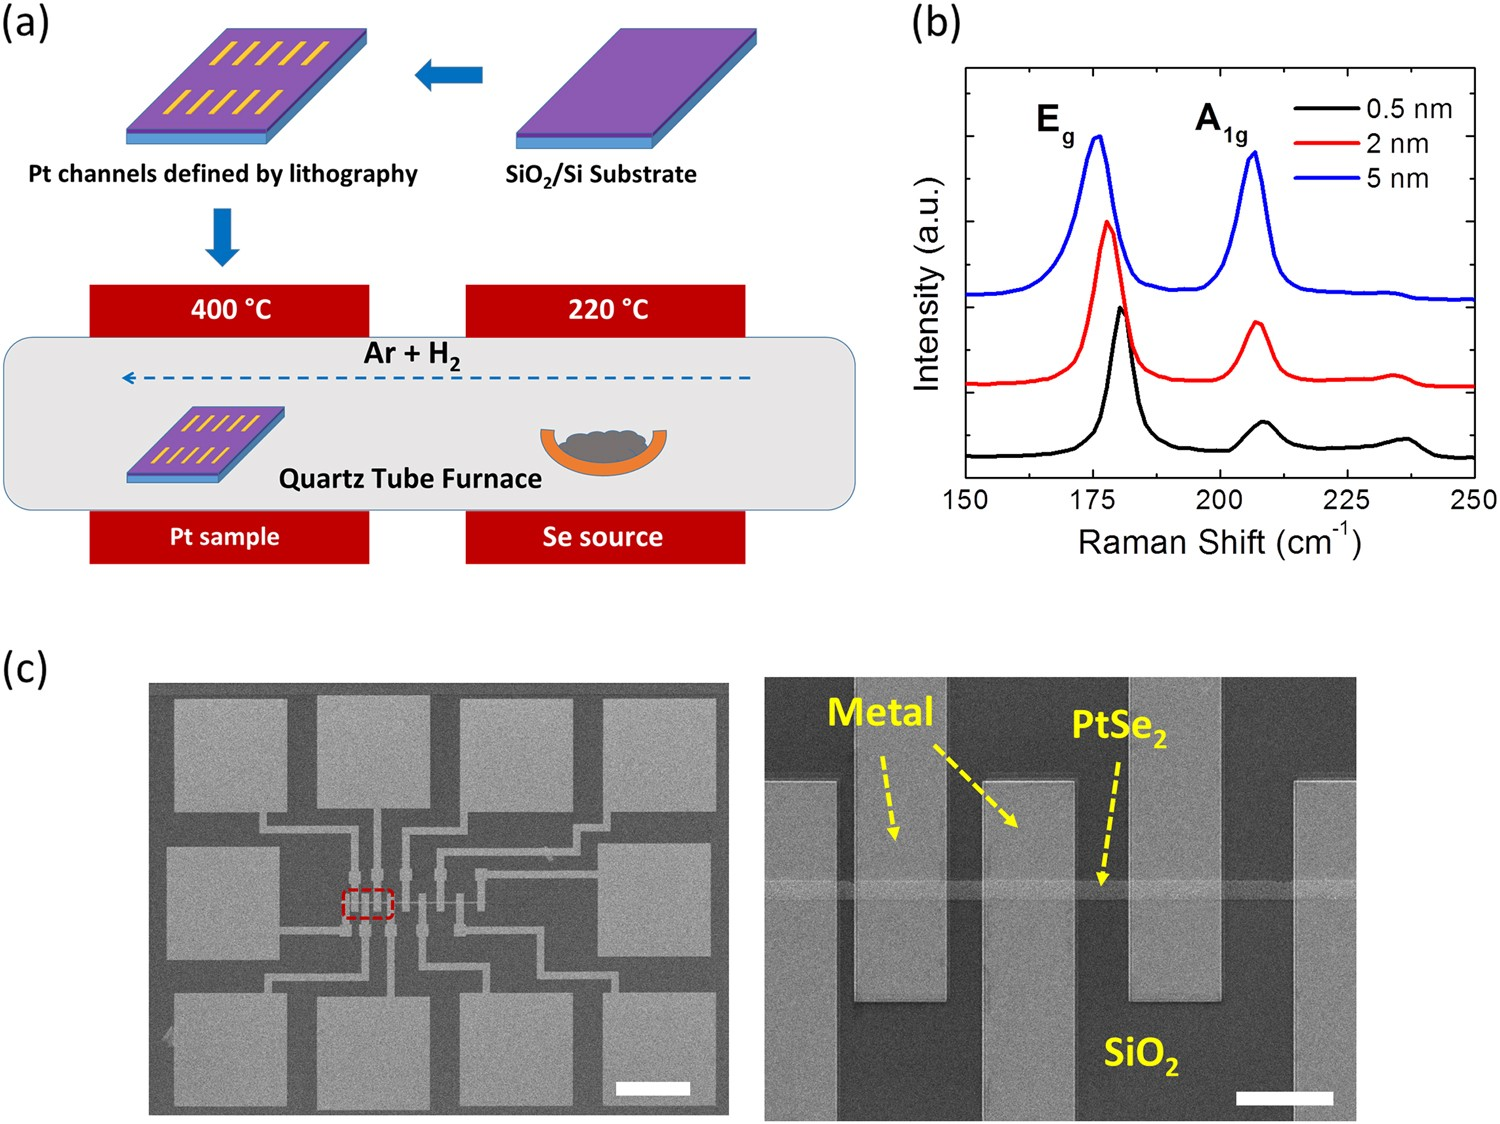 Electrical Devices From Top Down Structured Platinum Diselenide Mos Transistors 8211 Operation Films Npj 2d Materials And Applications